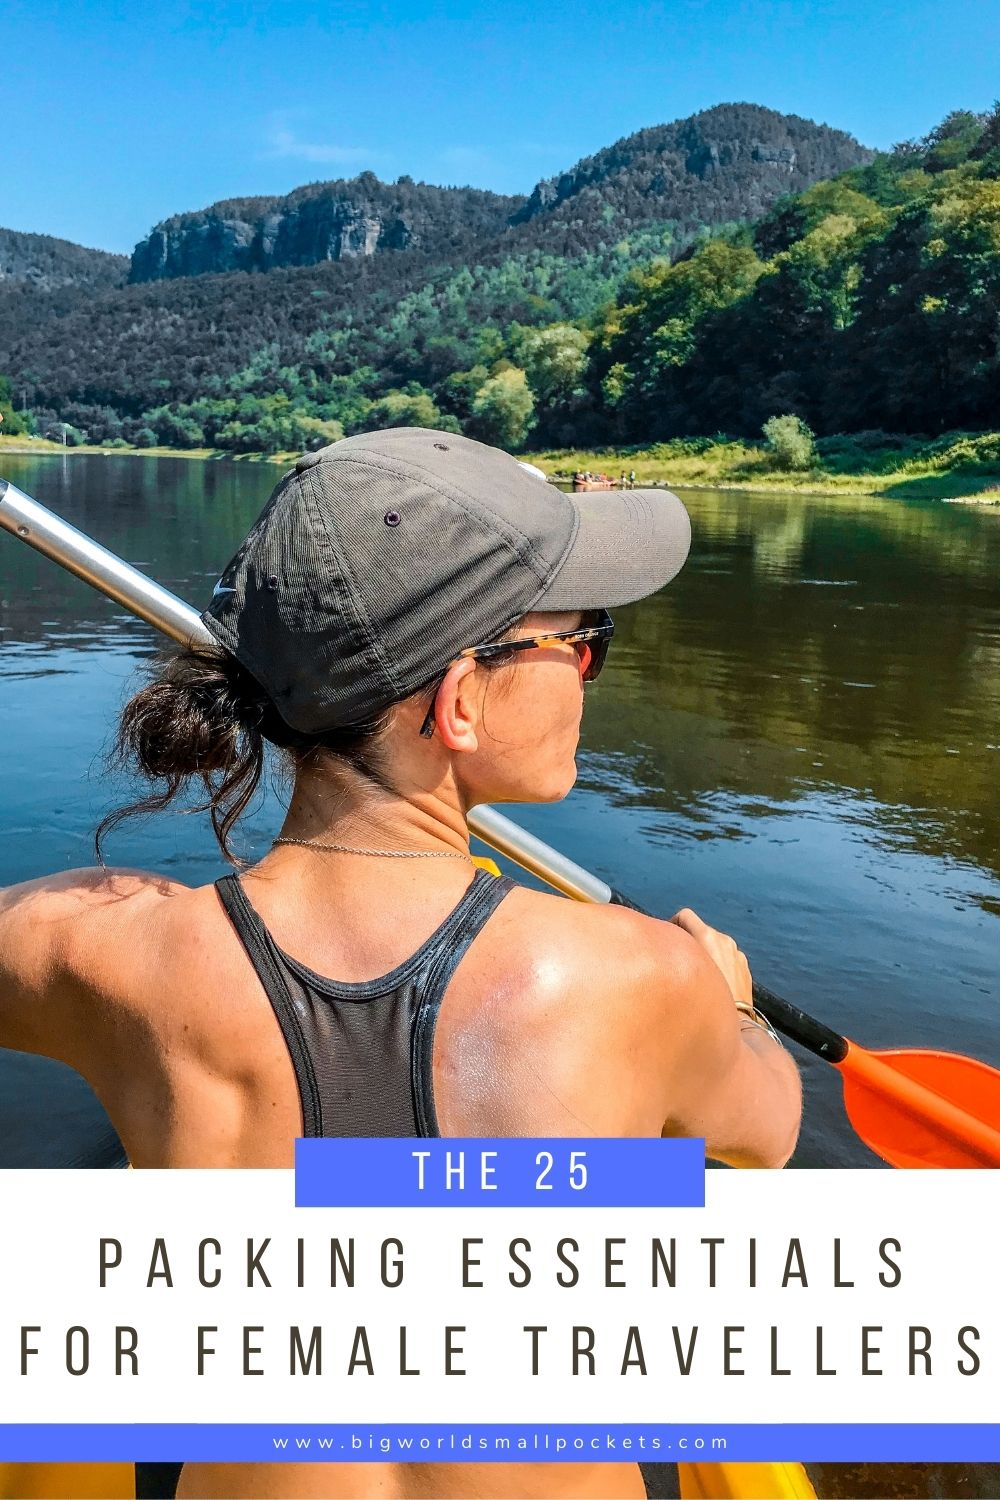 The 25 Travel Packing Essentials for Women